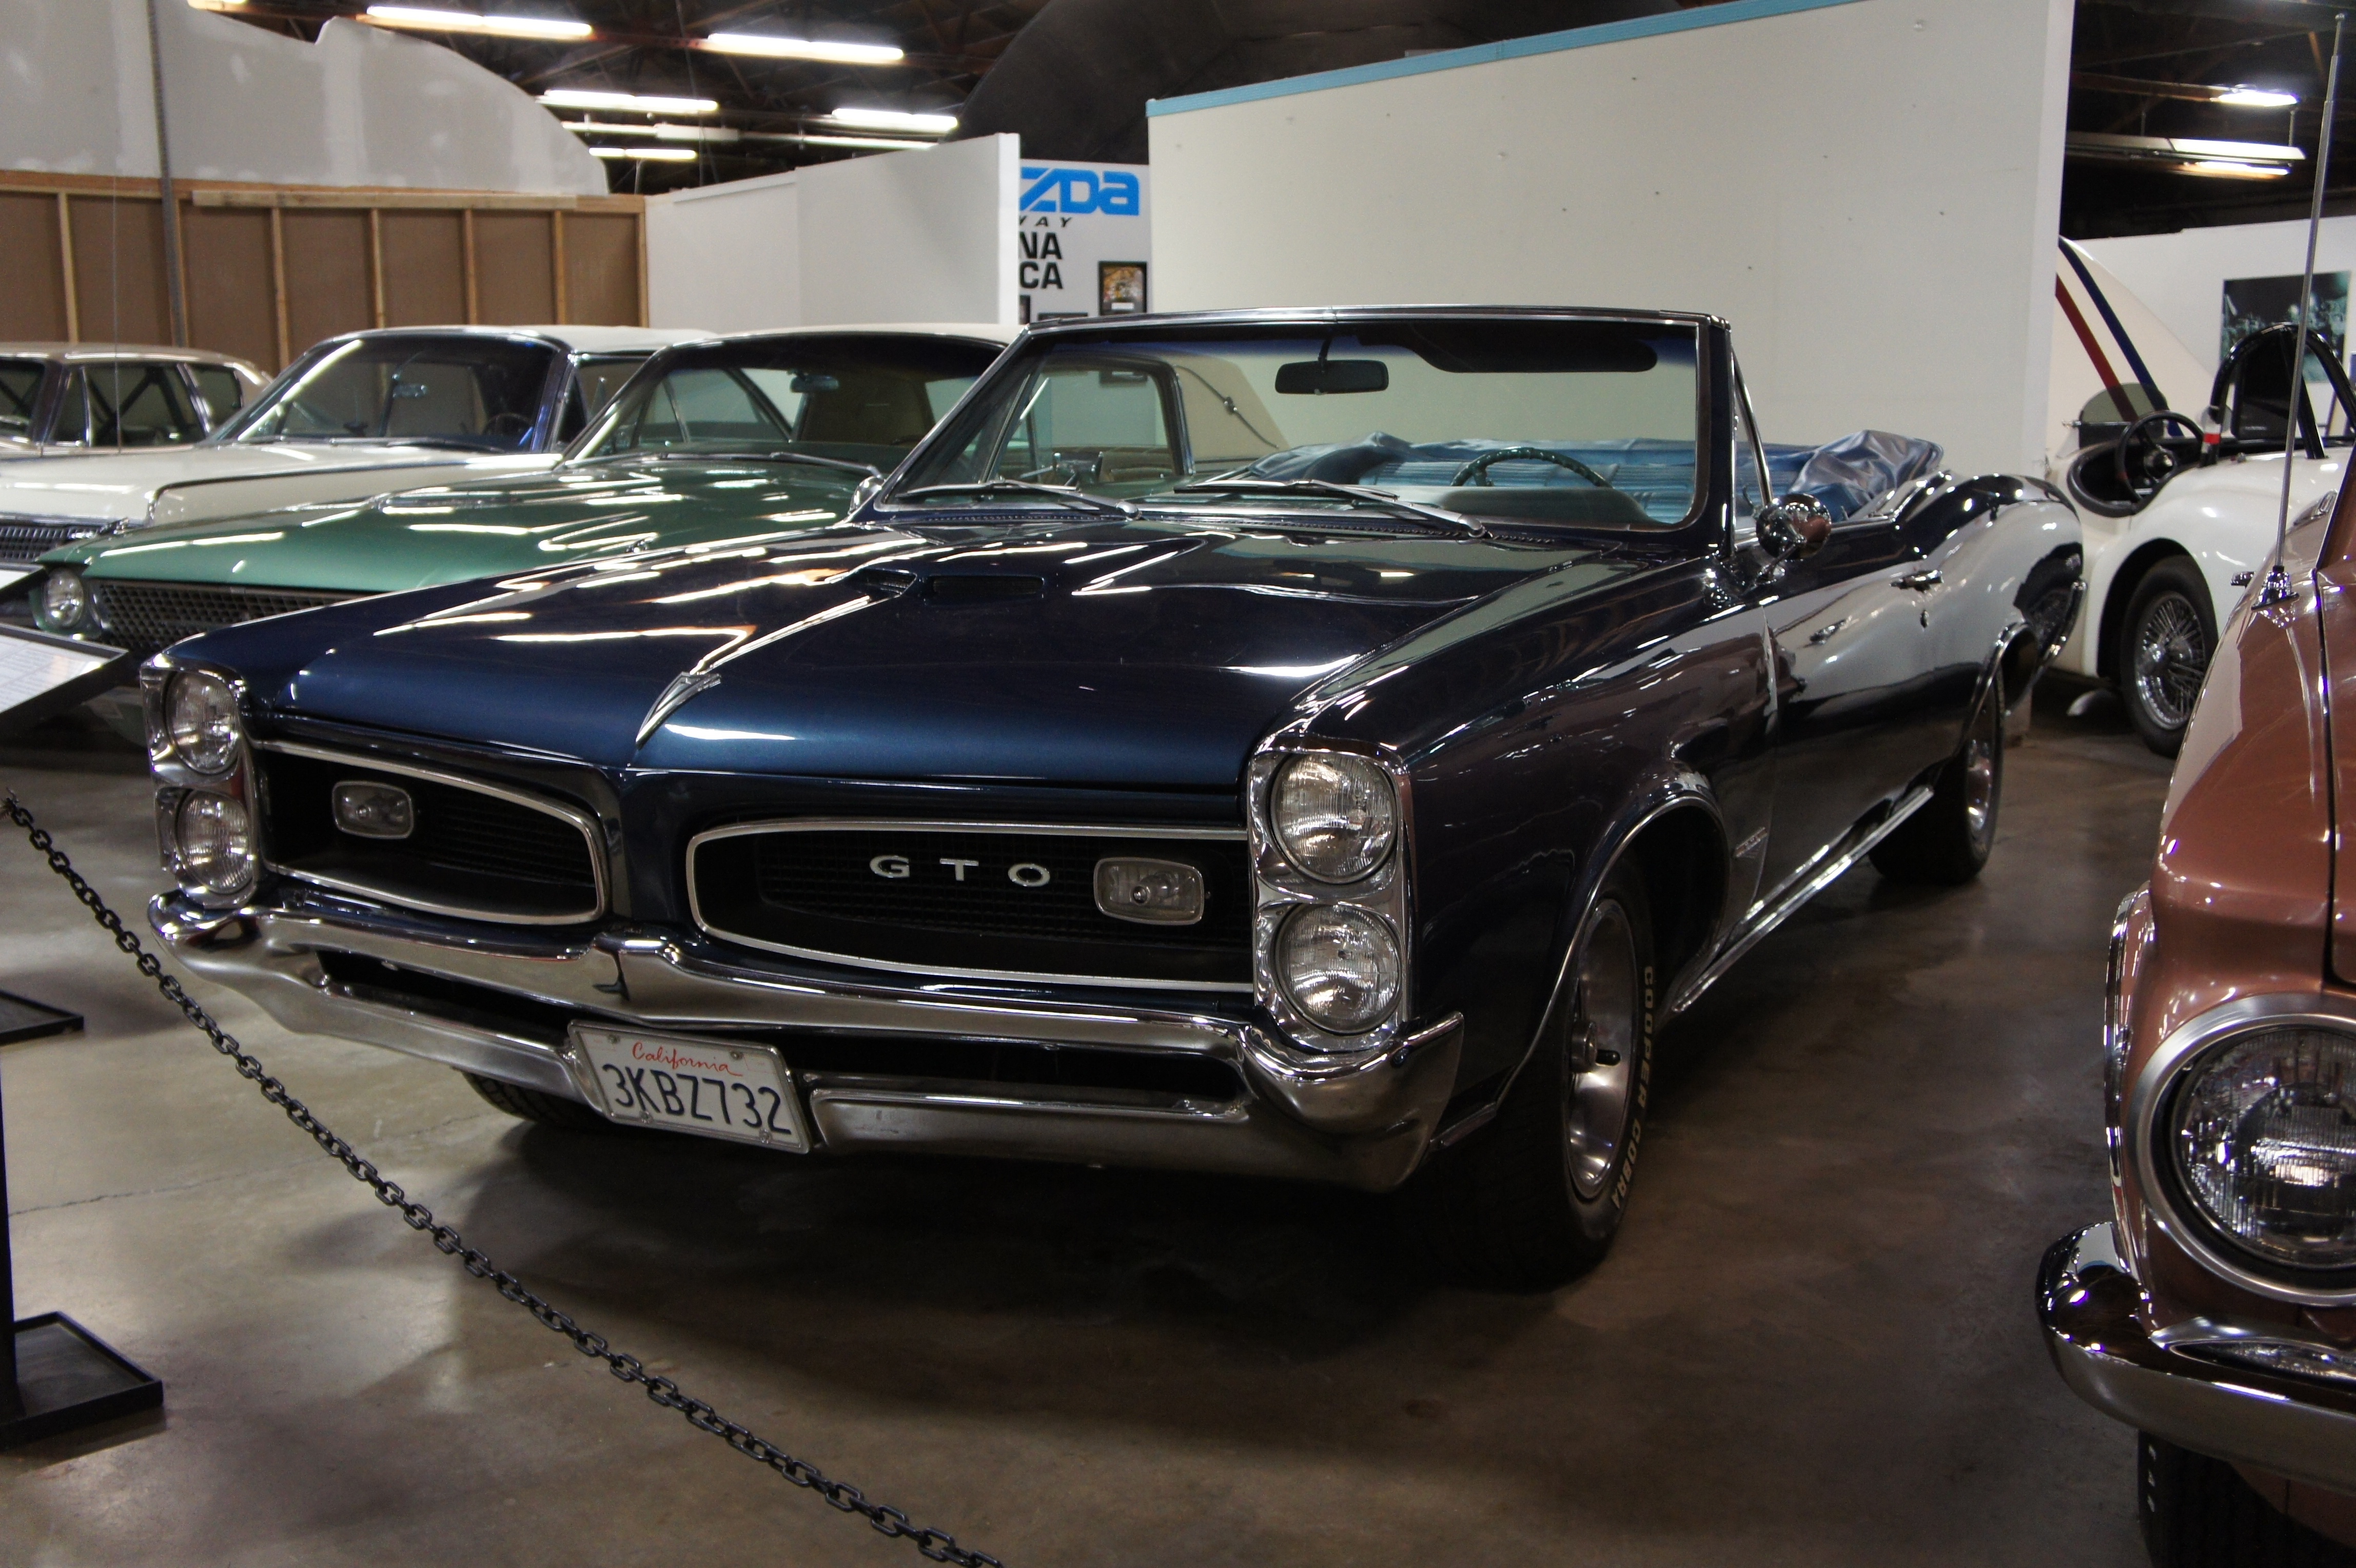 Free download 1966 Pontiac GTO Convertible Images Pictures